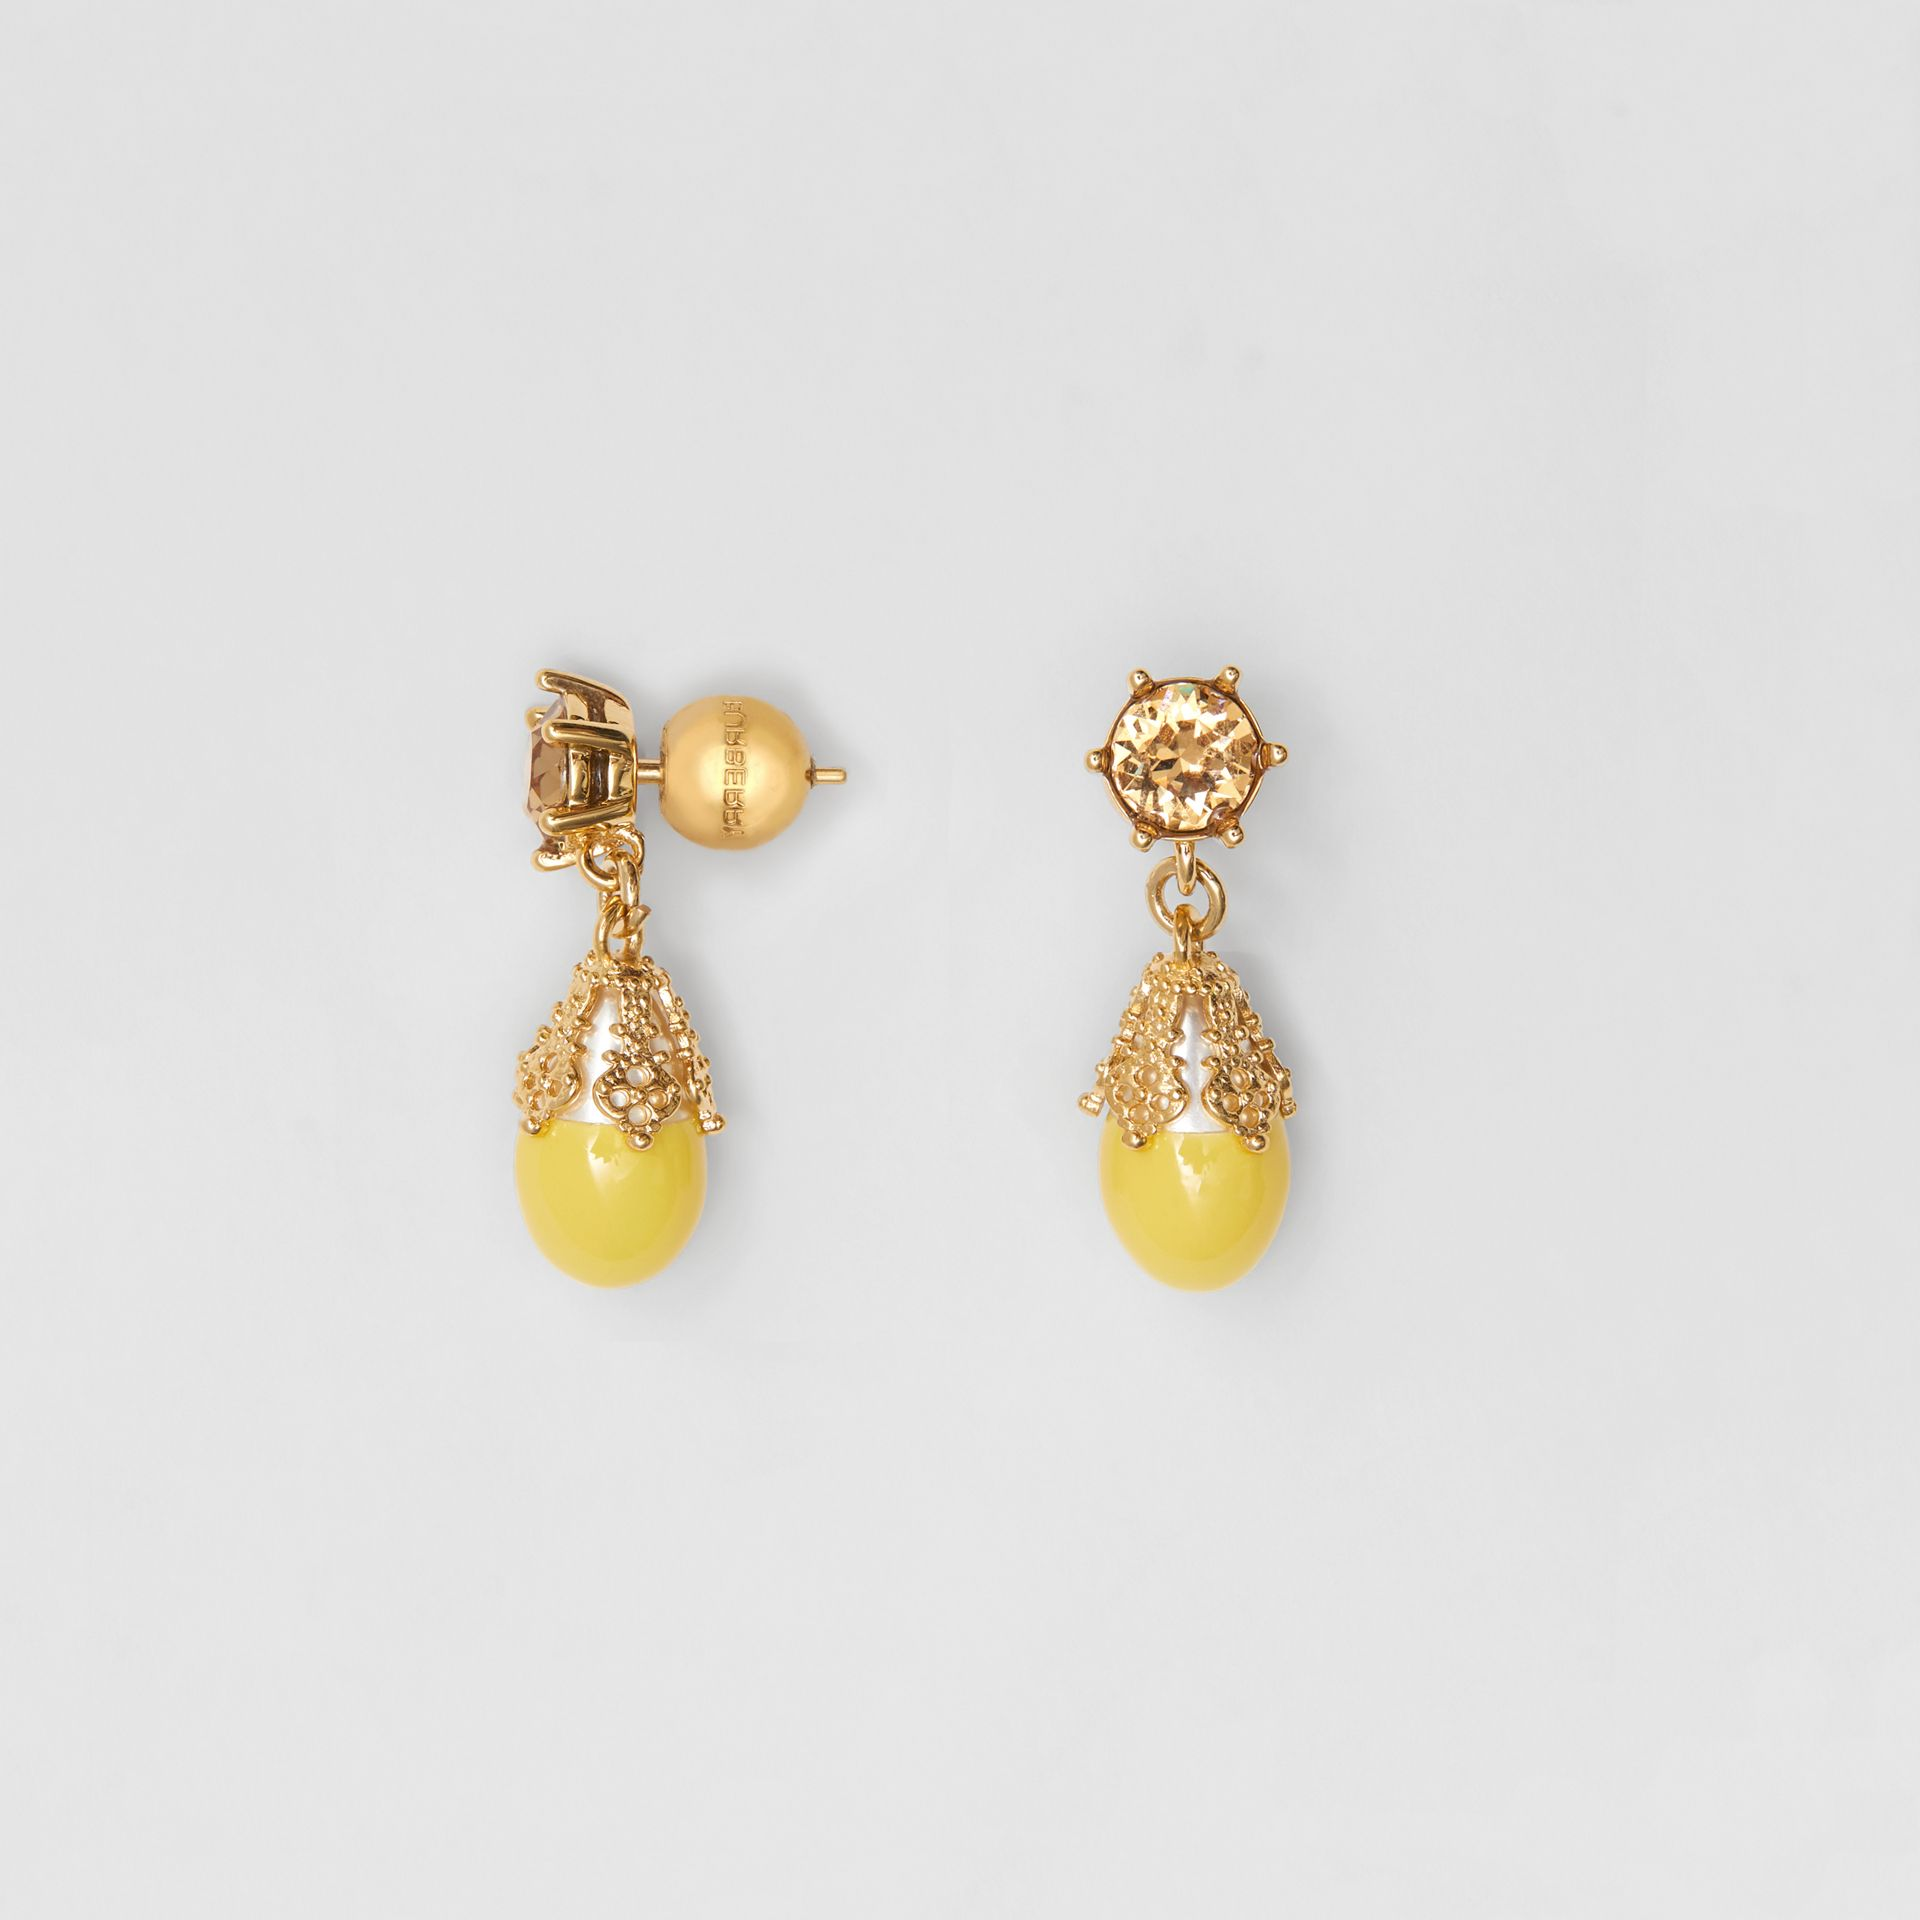 Gold-plated Faux Pearl Charm Earrings in Light Topaz/light - Women | Burberry Singapore - gallery image 3